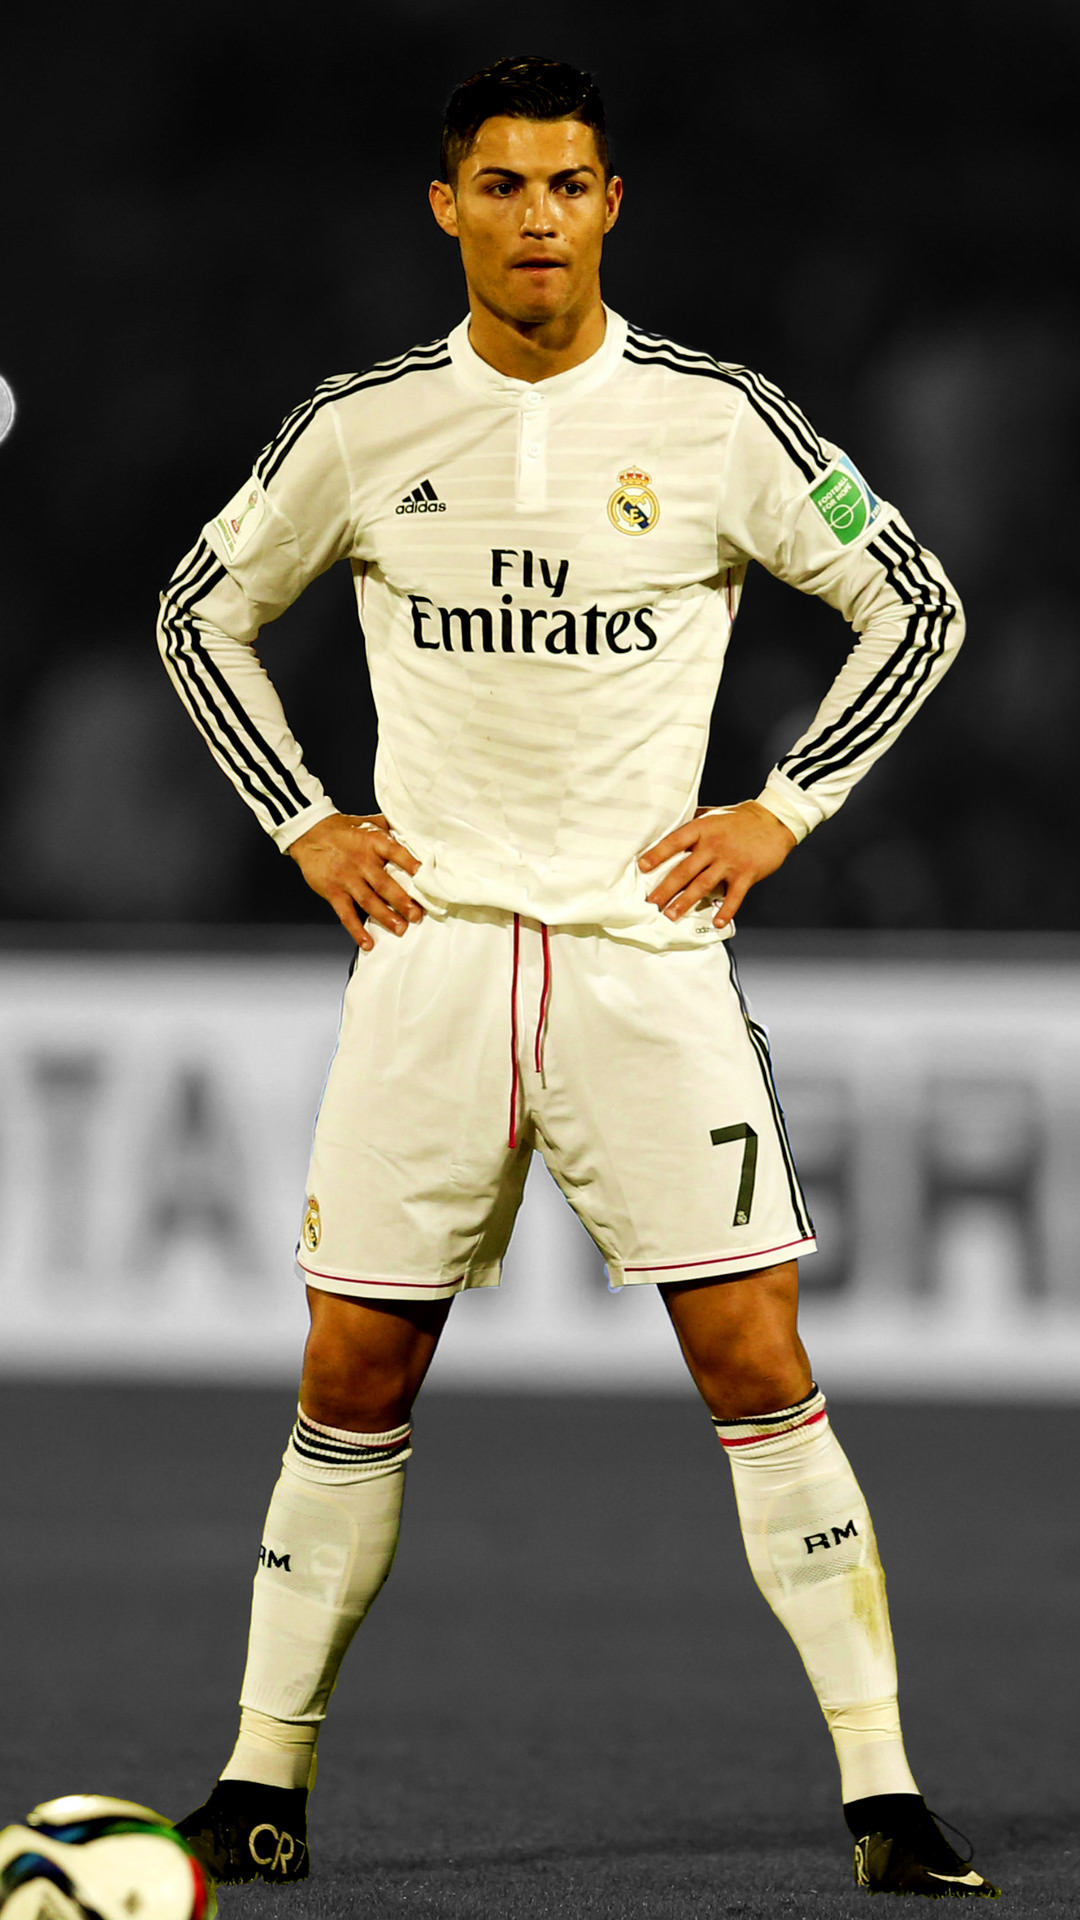 Cr7 wallpaper 2018 79 images - Hd photos of cr7 ...